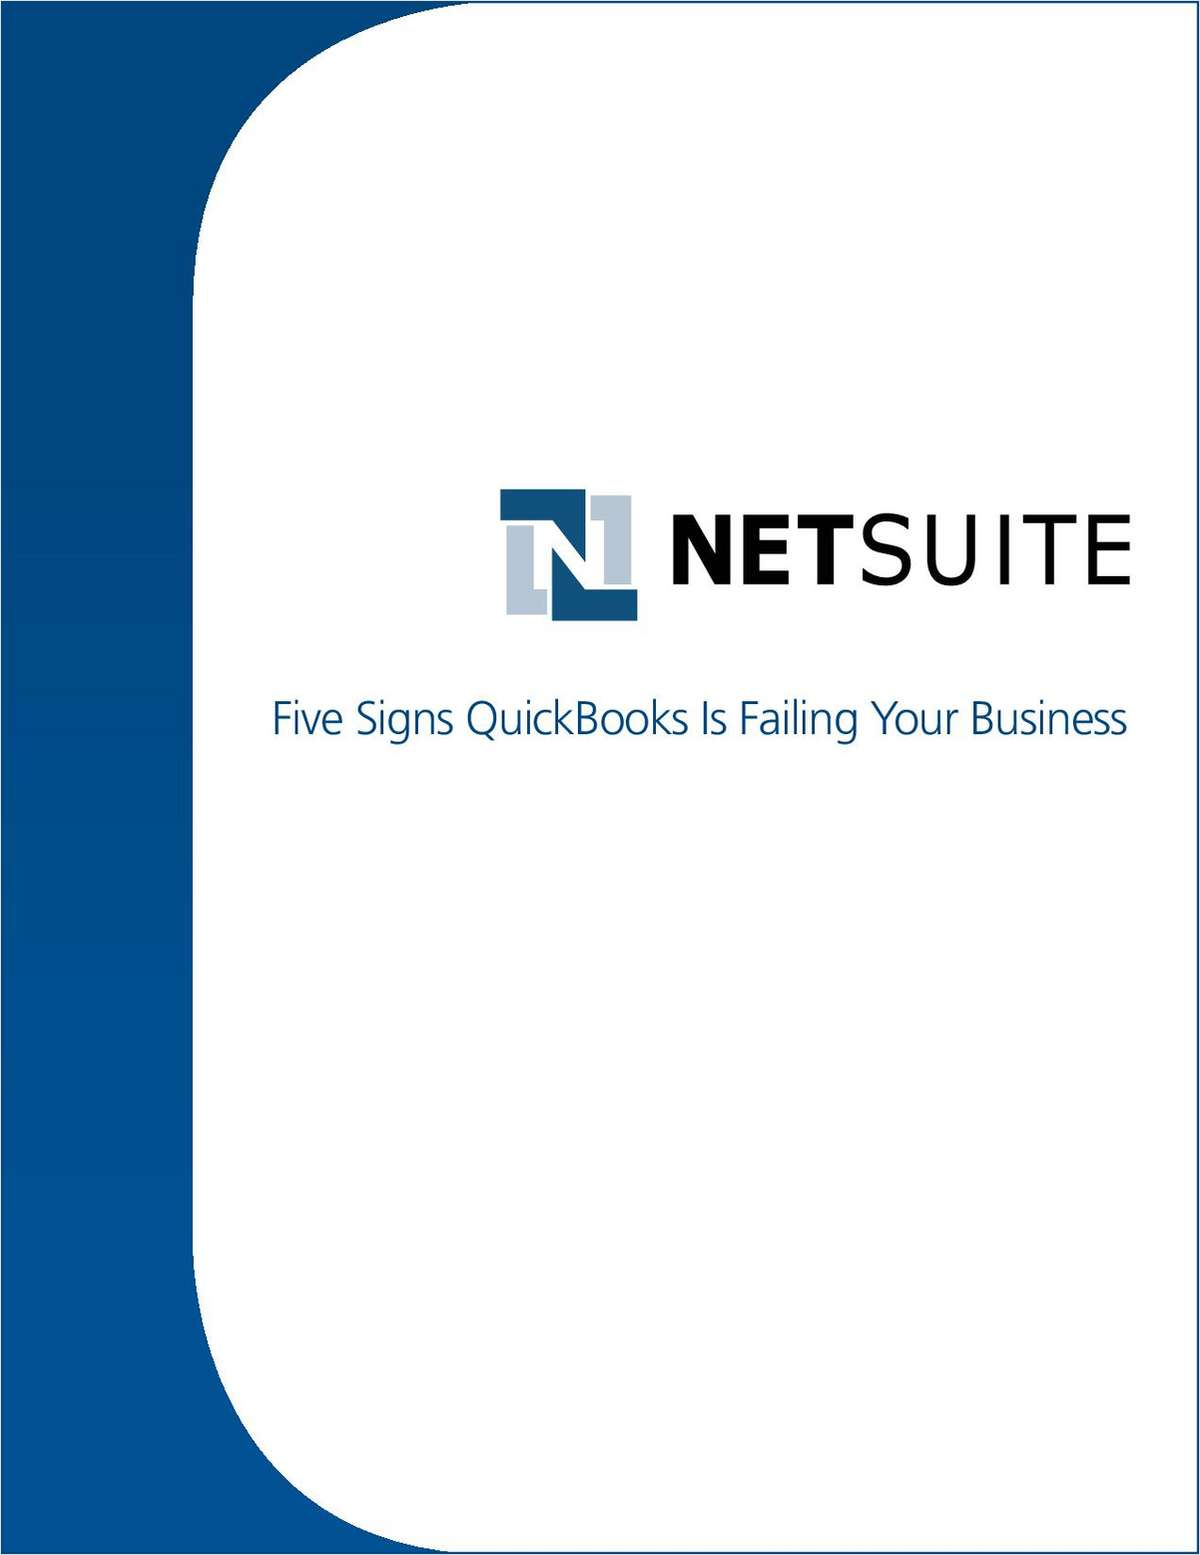 Five Signs QuickBooks is Failing Your Business